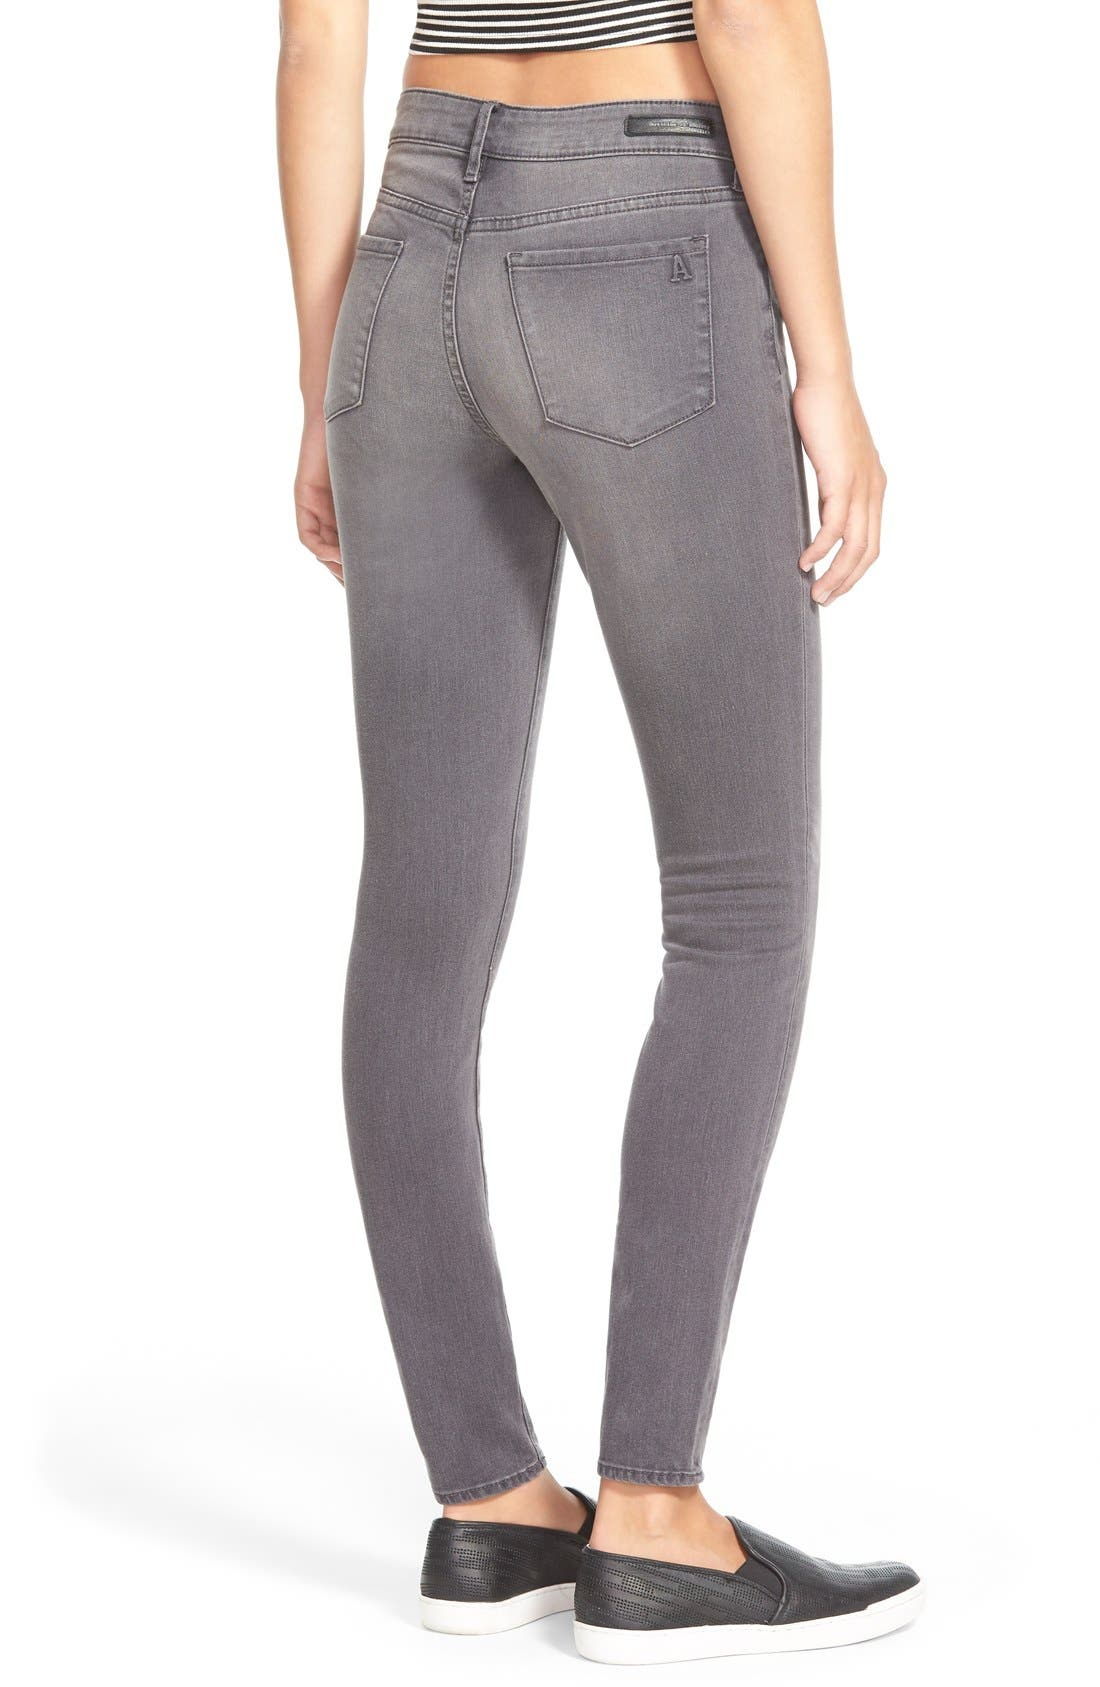 Alternate Image 2  - Articles of Society 'Sarah' Skinny Jeans (Greyhound)